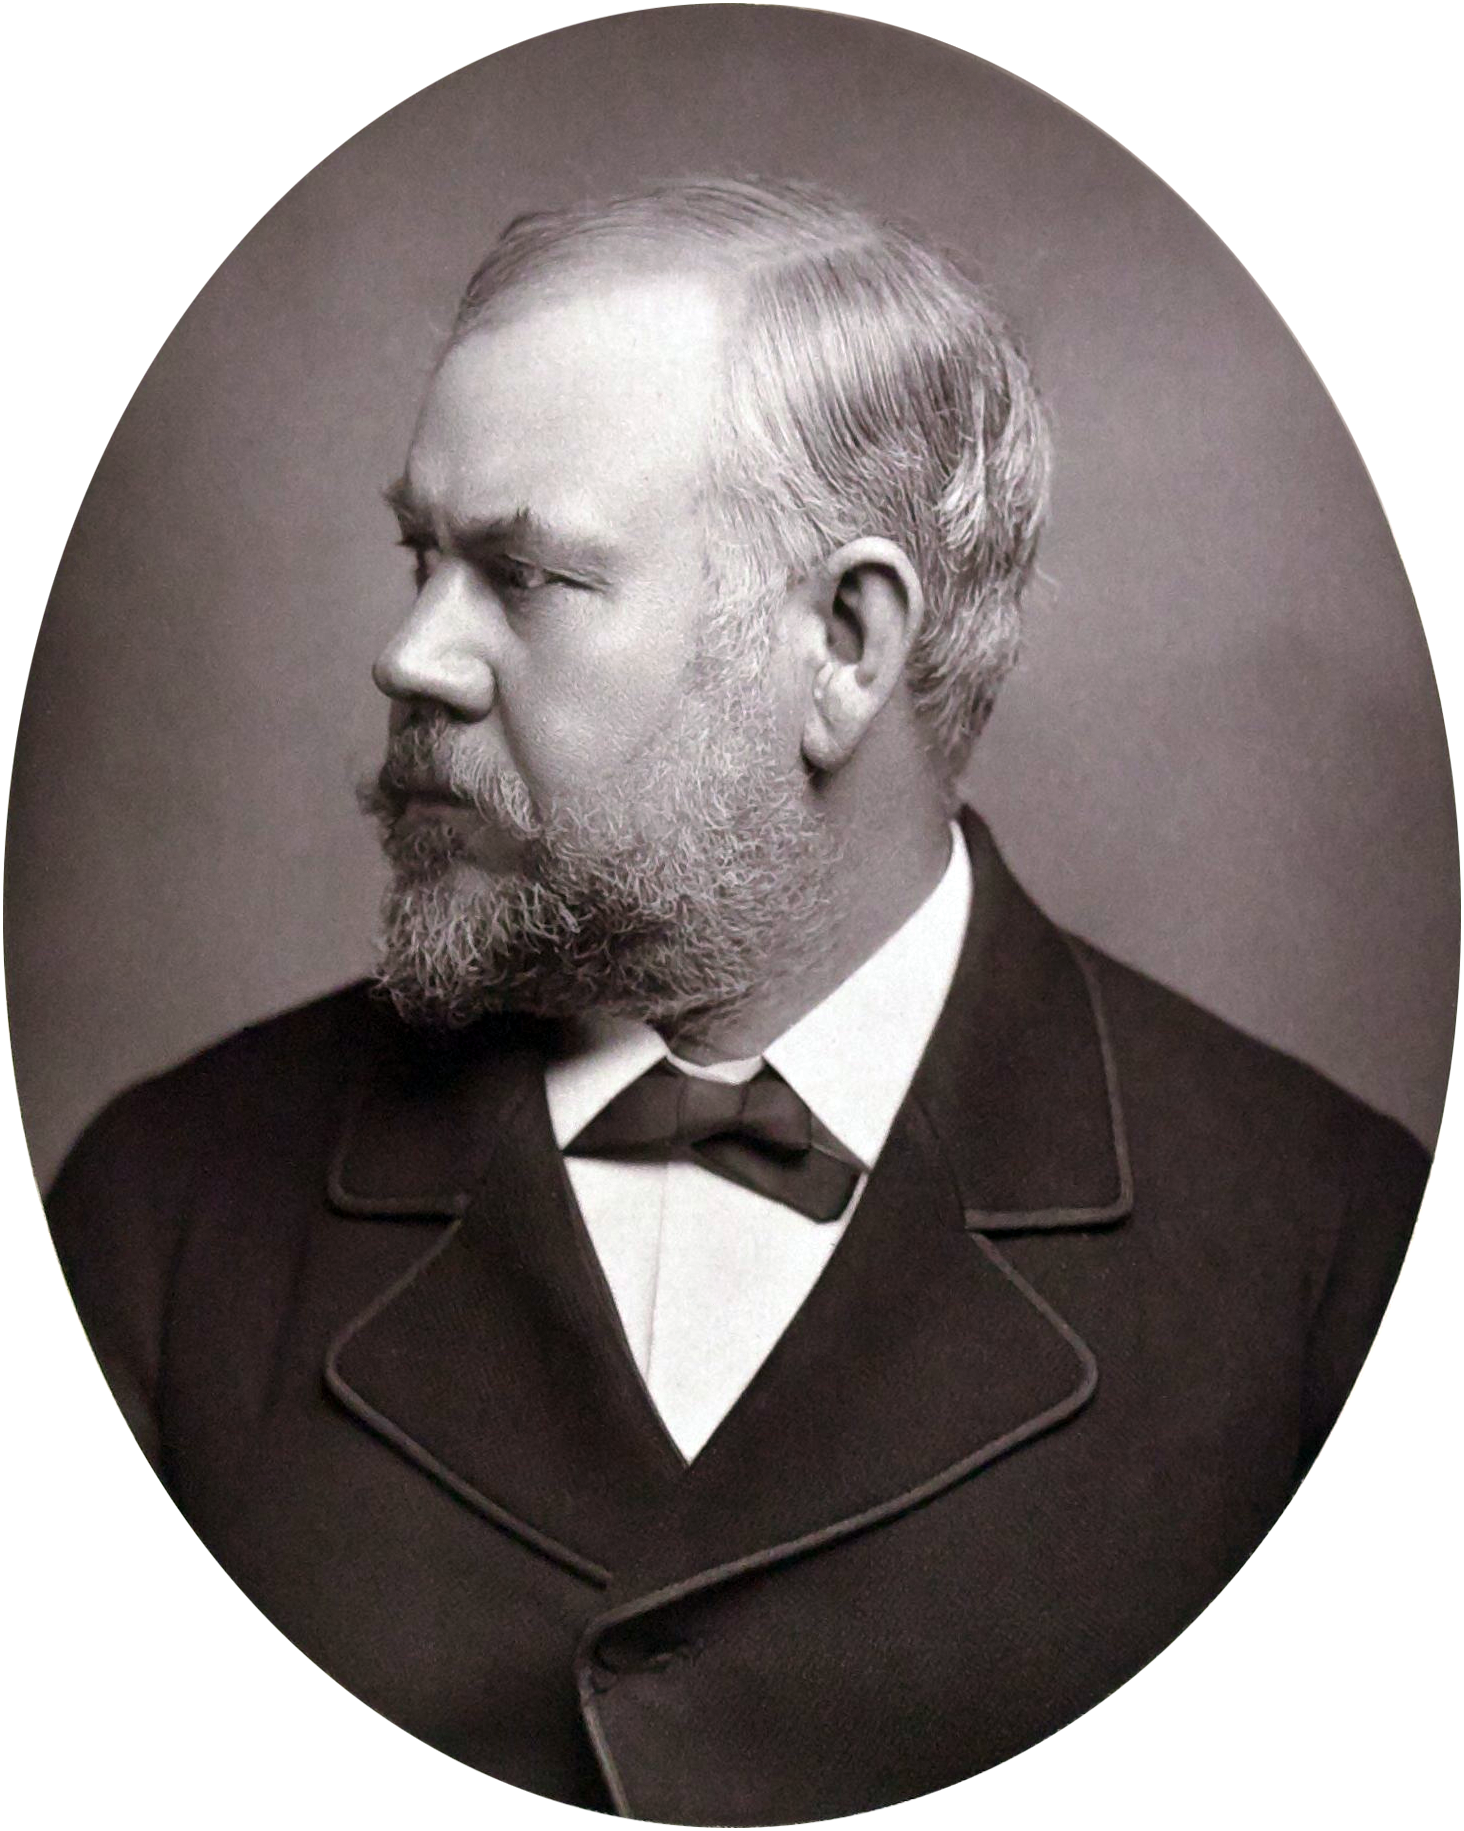 Image of Henry Hugh Armstead from Wikidata